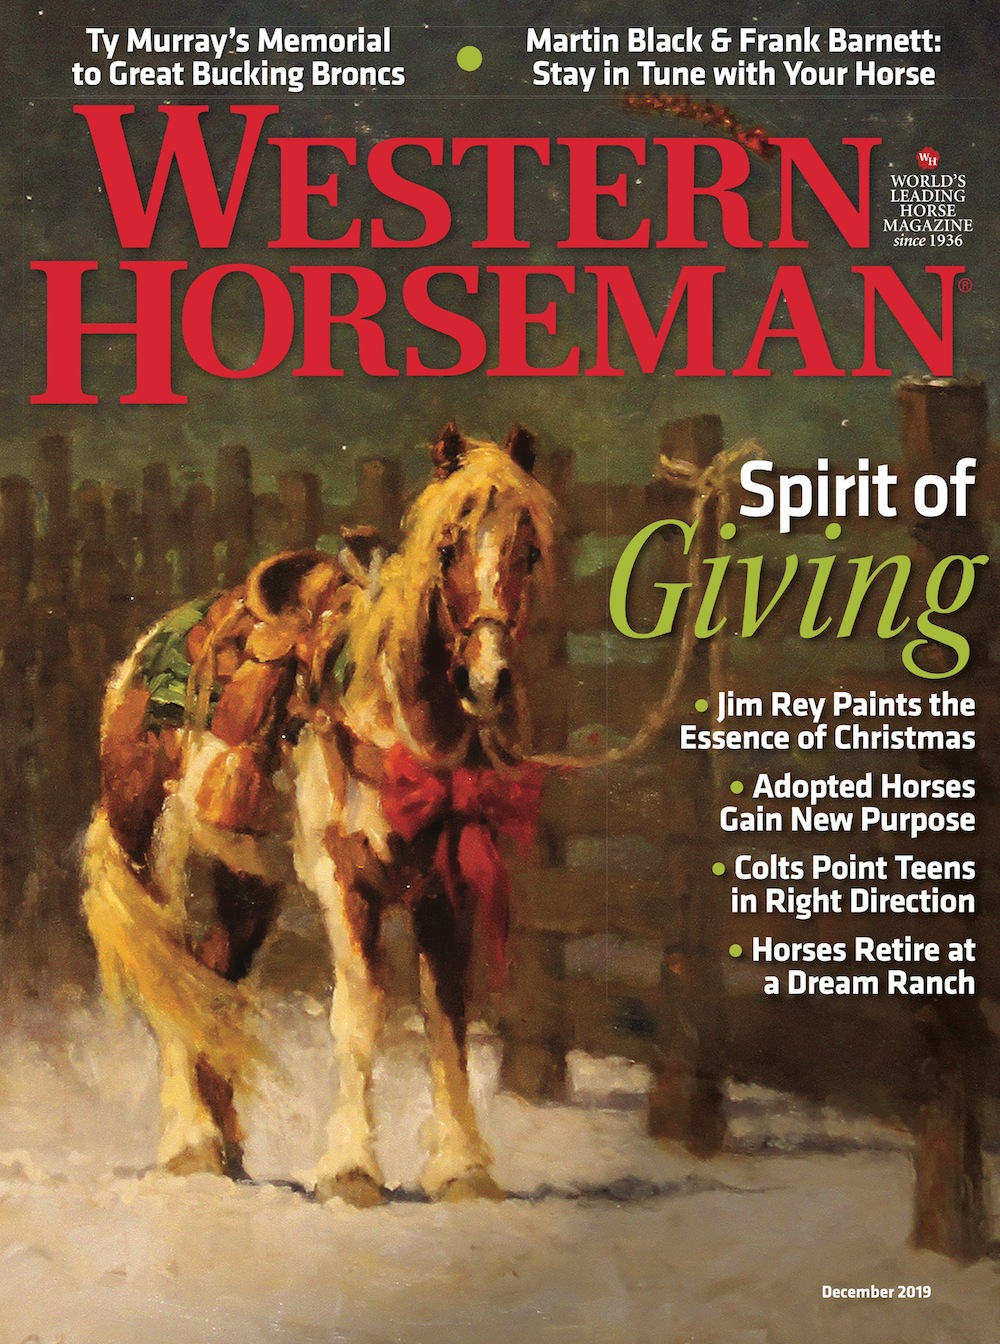 Western Horseman magazine December 2019 cover